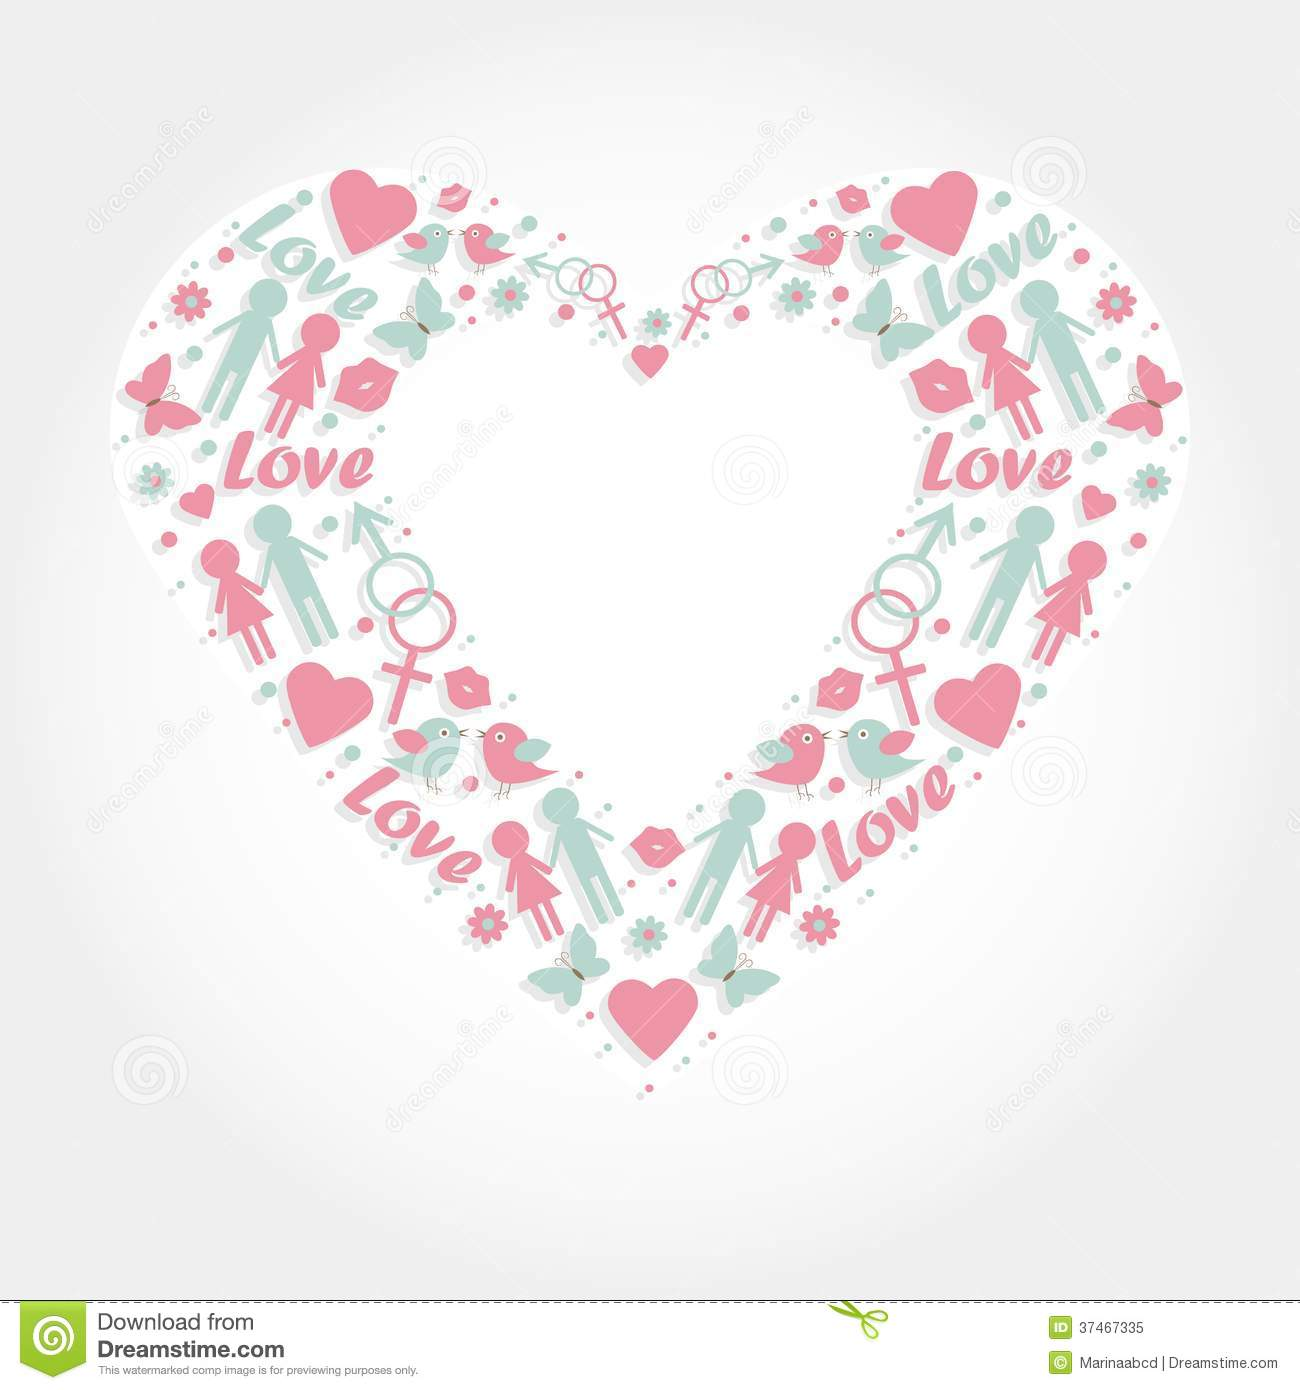 Heart with love symbols stock vector. Illustration of love - 37467335